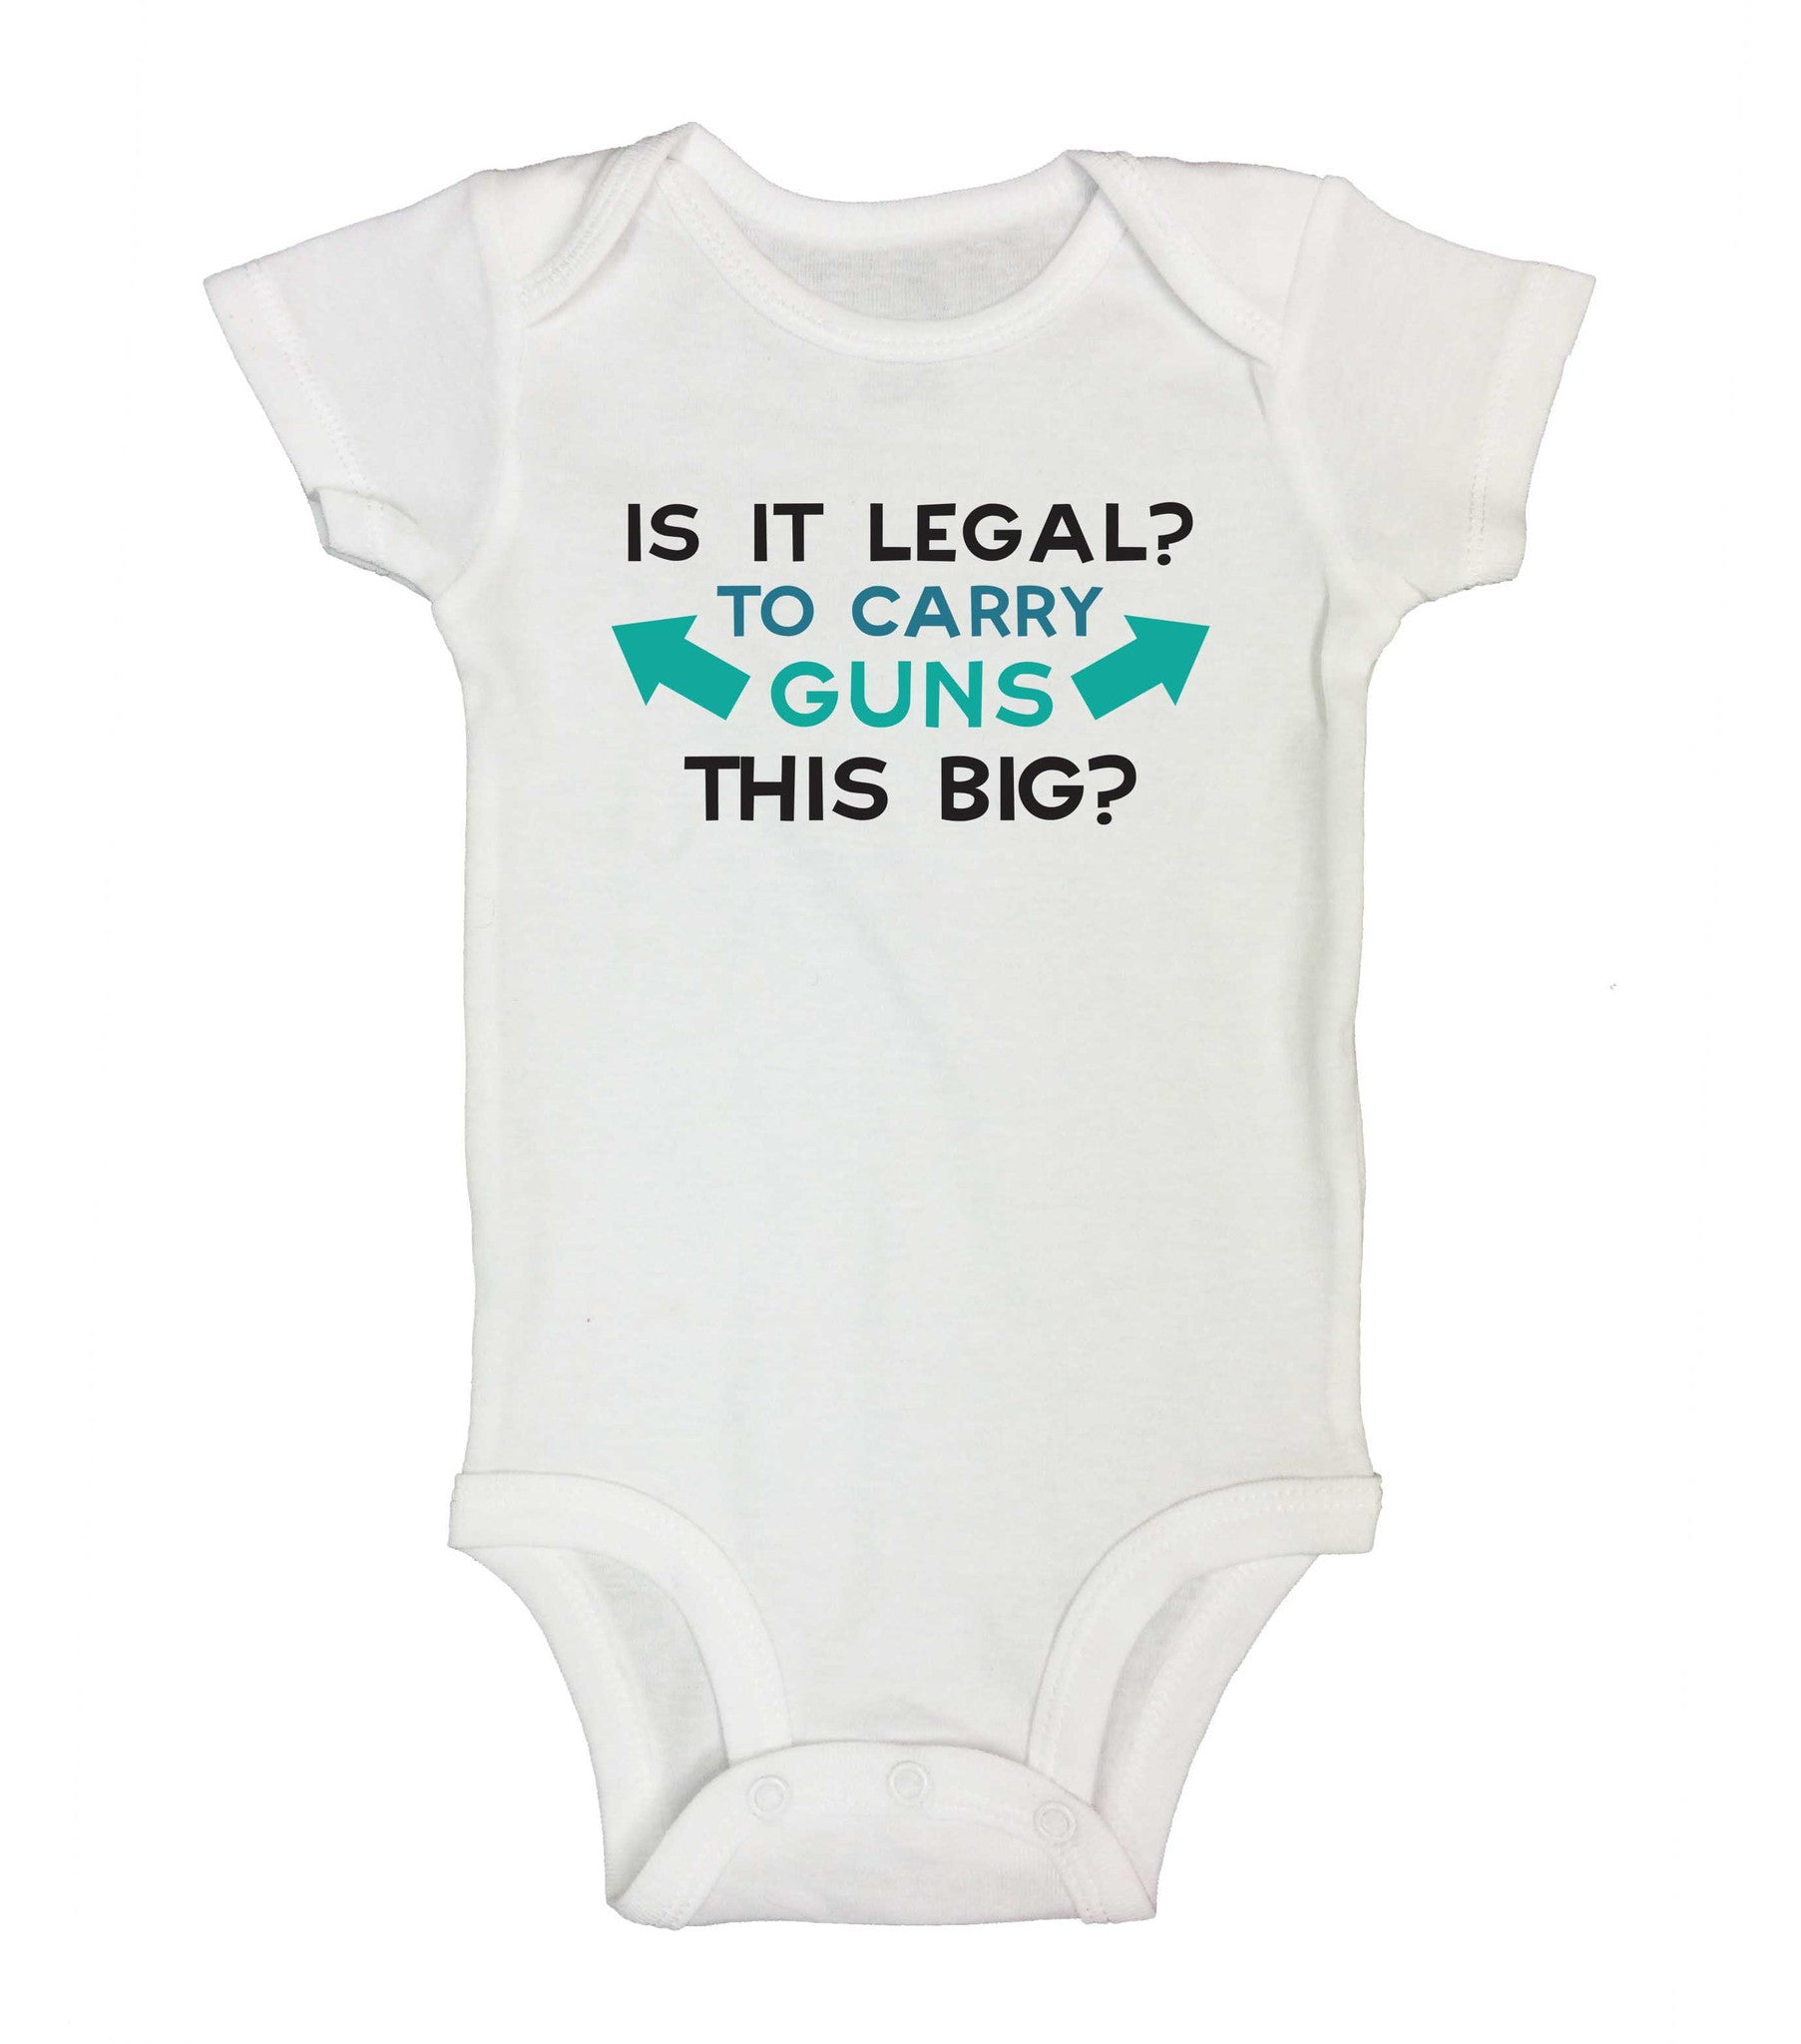 Is It Legal? To Carry Guns This Big? Funny Kids Onesie - 179 - Funny Shirts Tank Tops Burnouts and Triblends  - 2